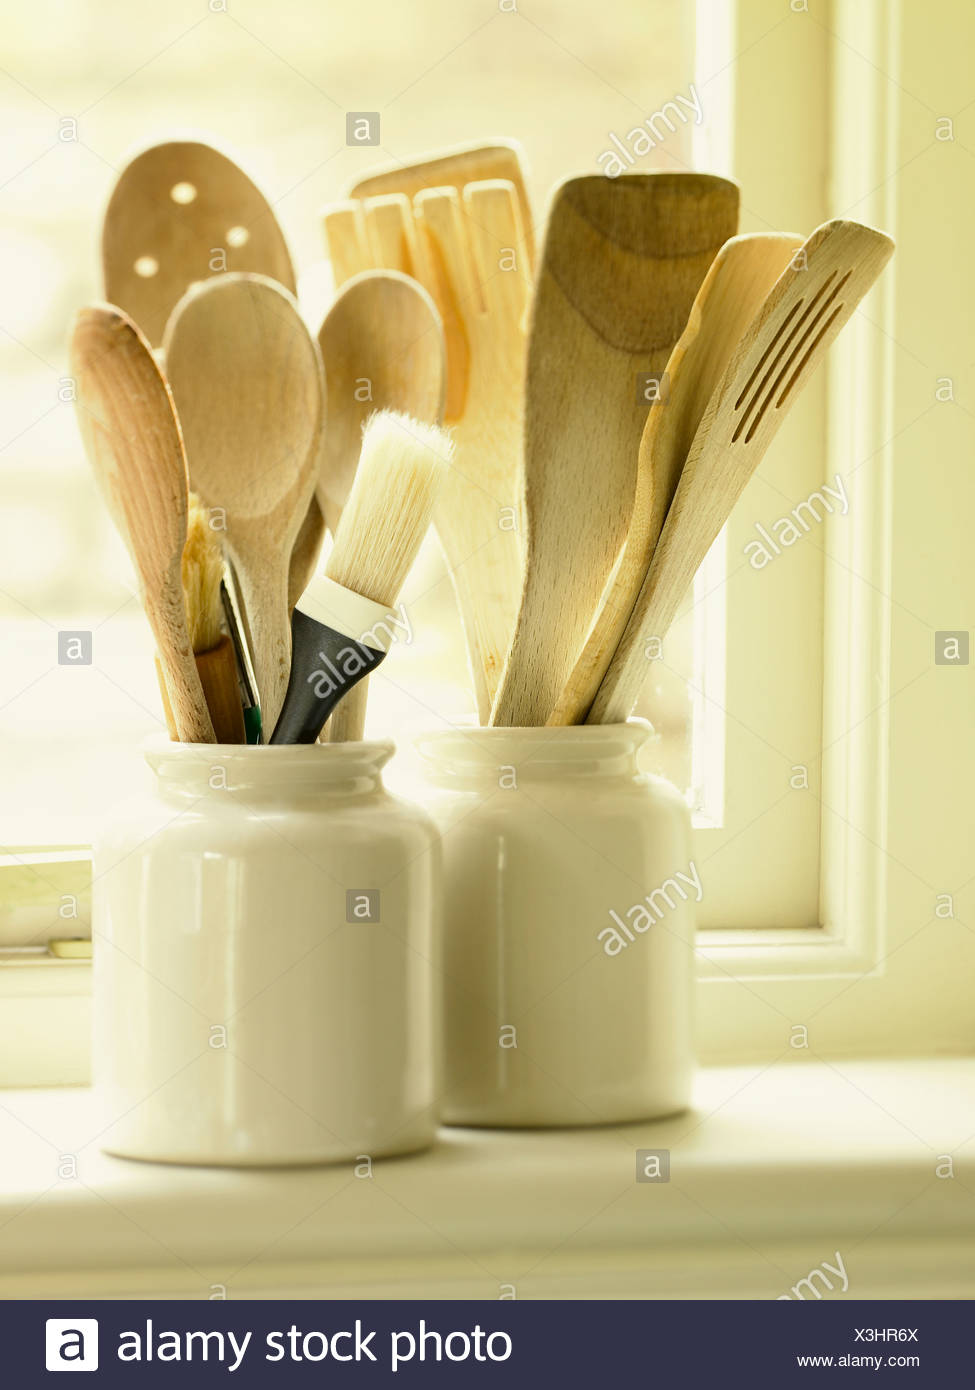 Kitchen implements - Stock Image